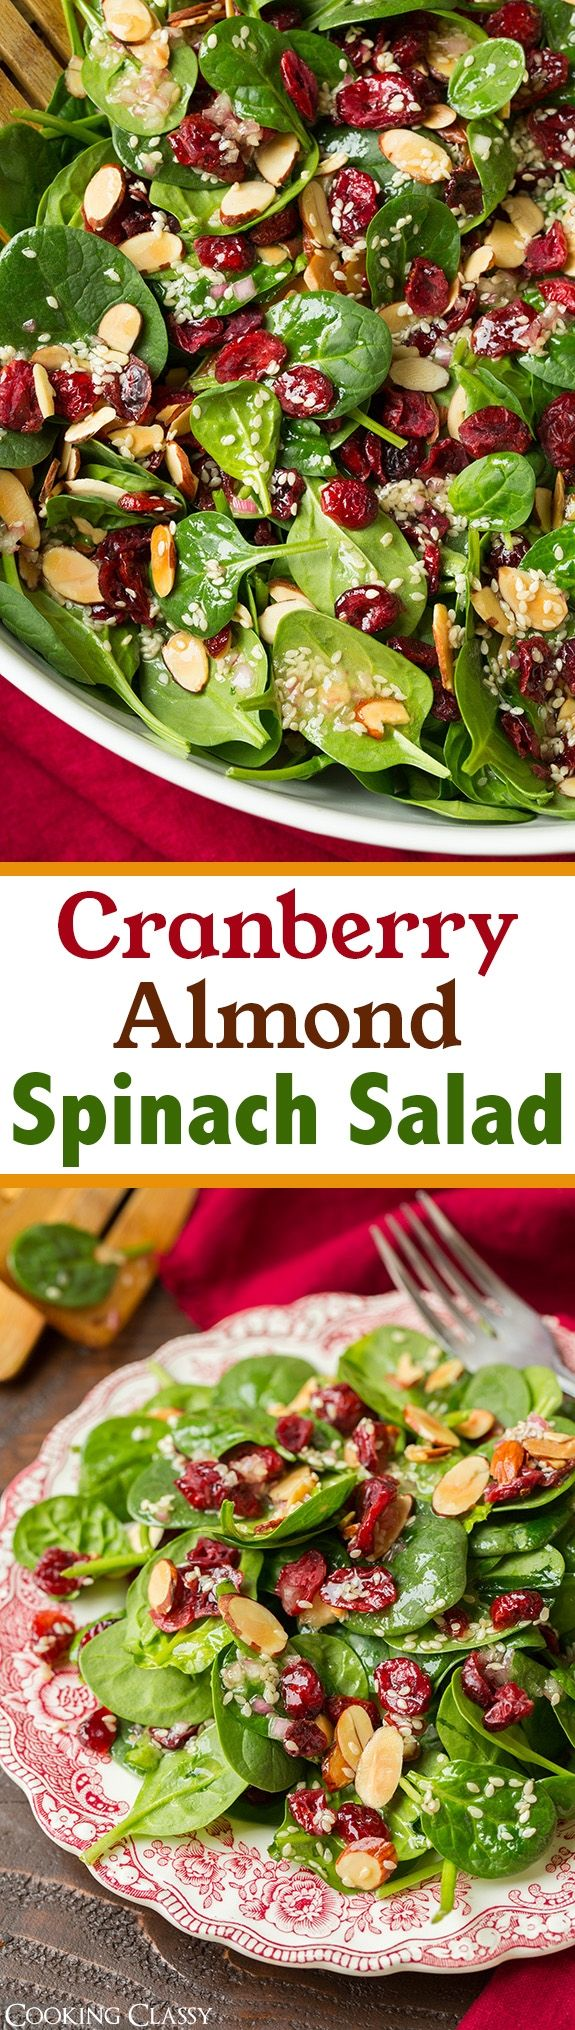 Cranberry Almond Spinach Salad with Sesame Seeds Dressing - delicious, simple salad! Perfect for Christmas! #weightlossrecipes